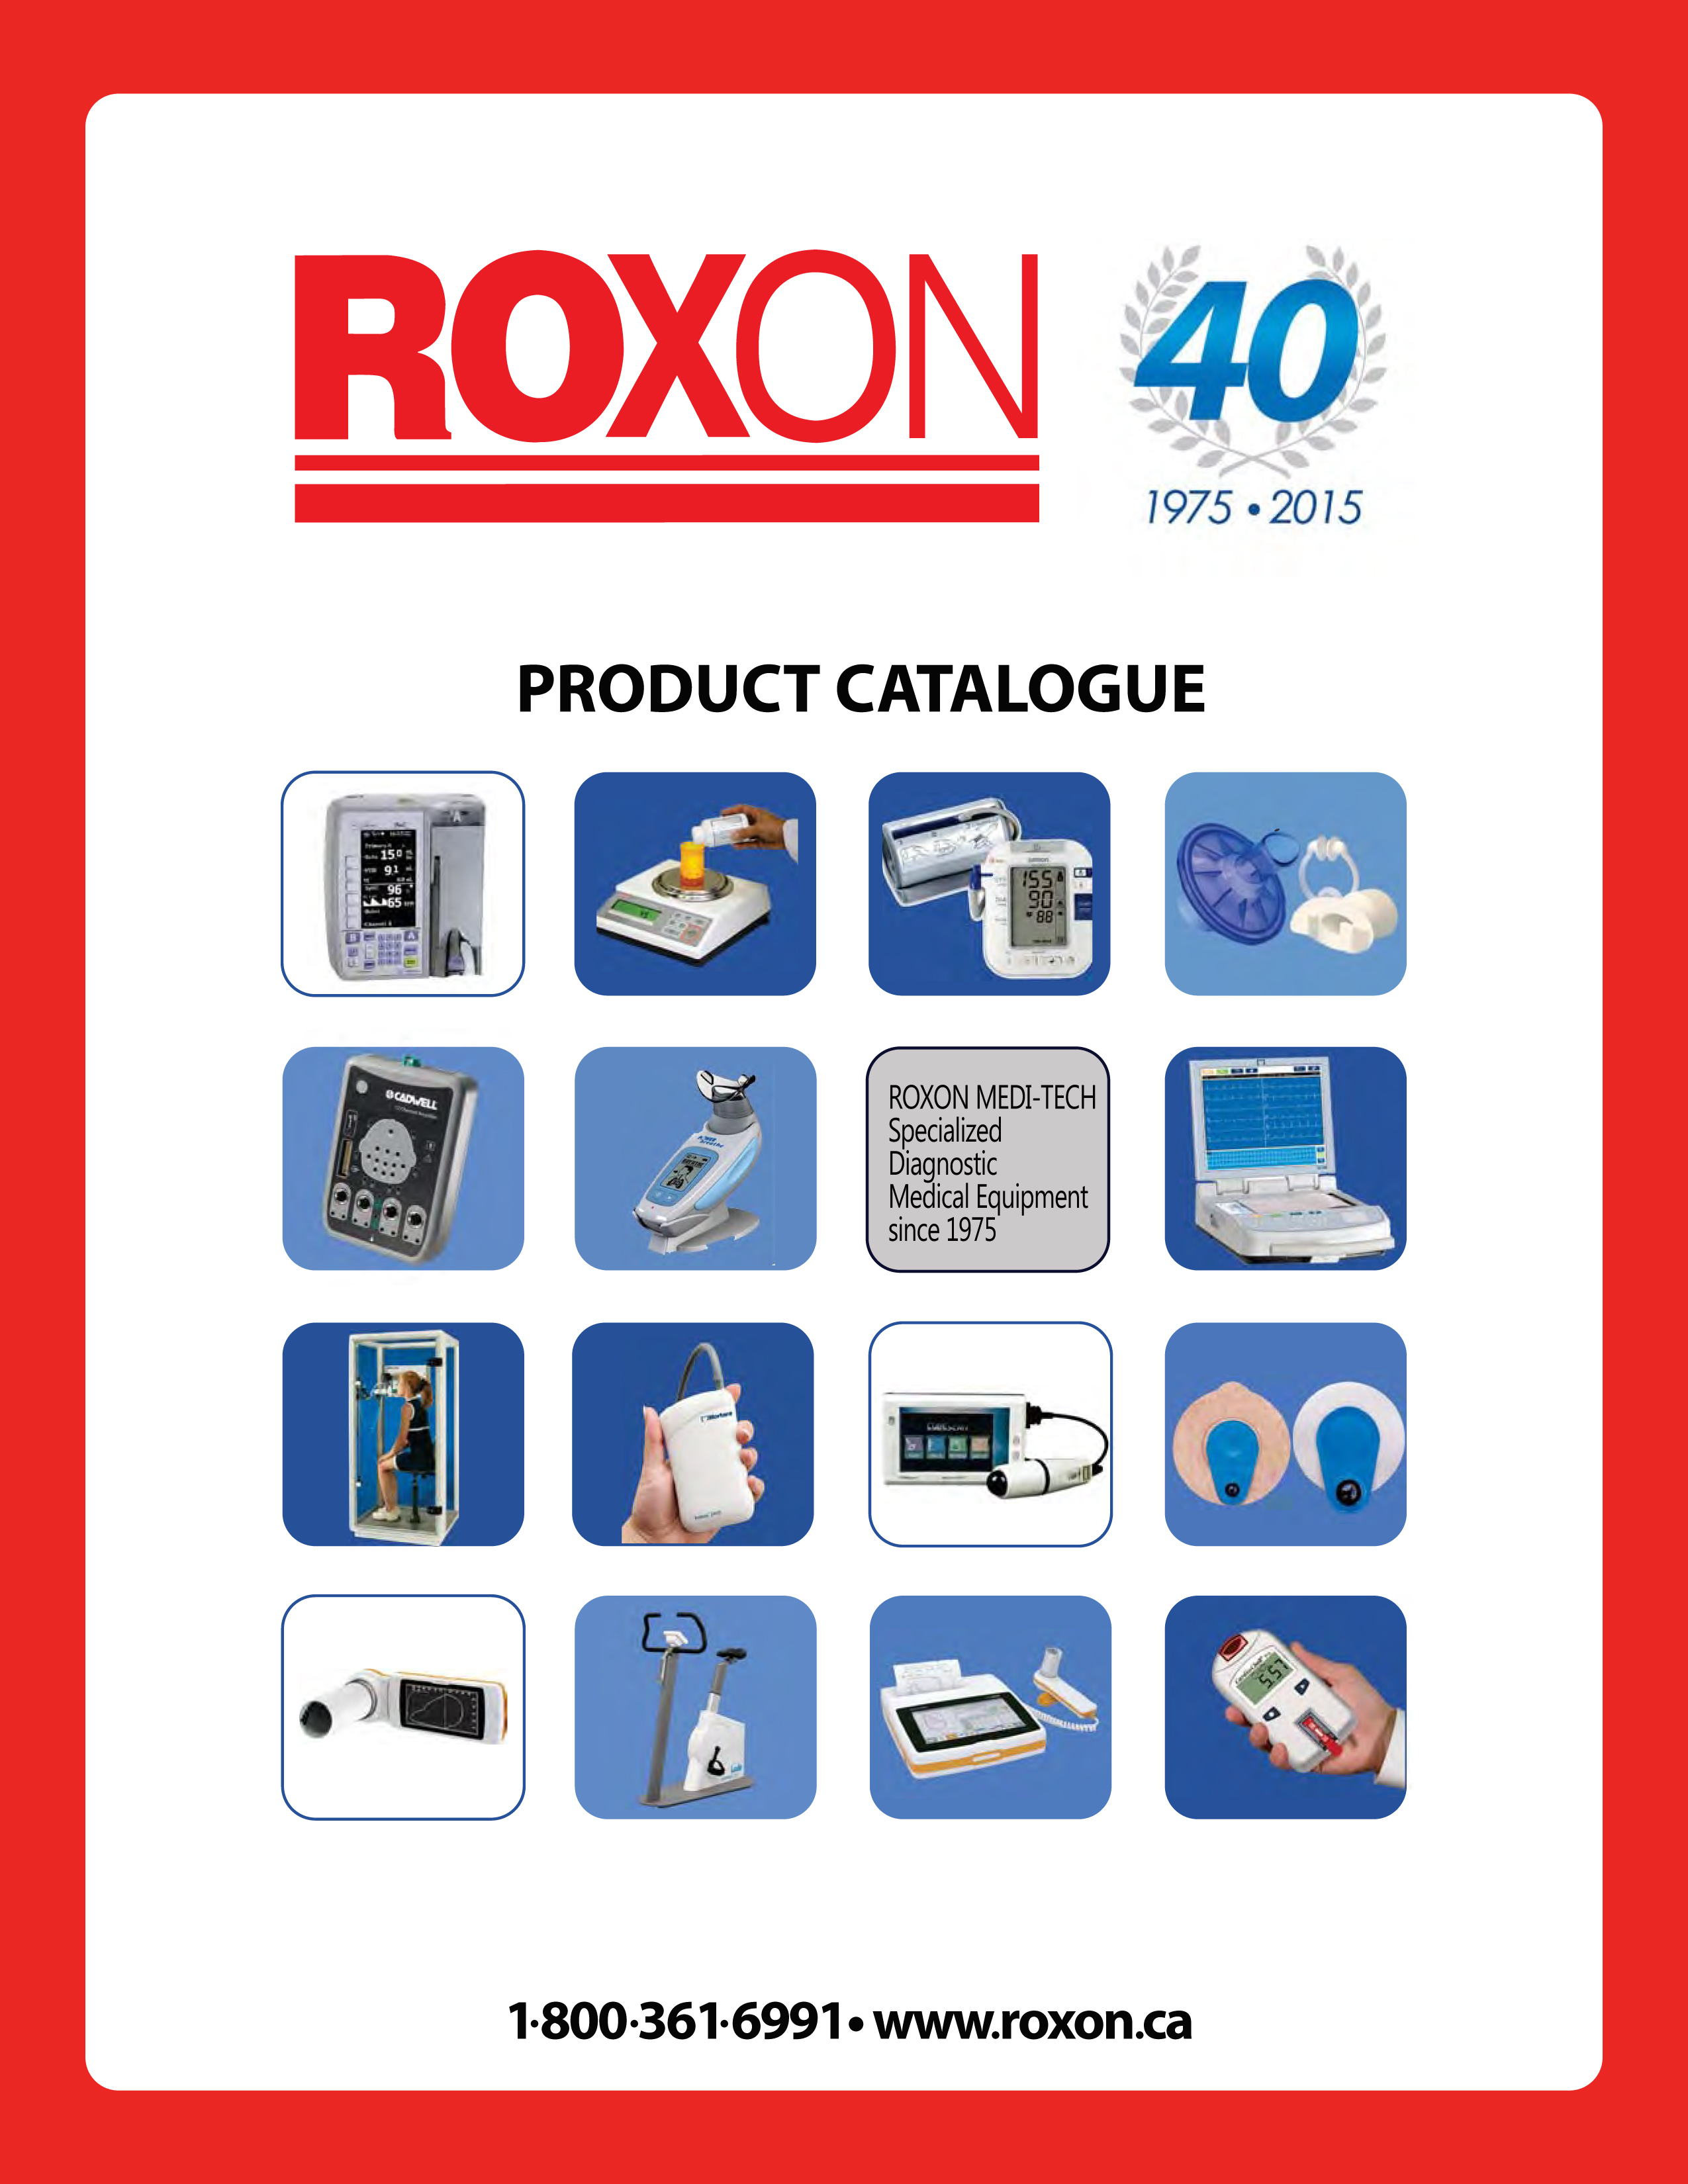 Roxon Product Catalogue